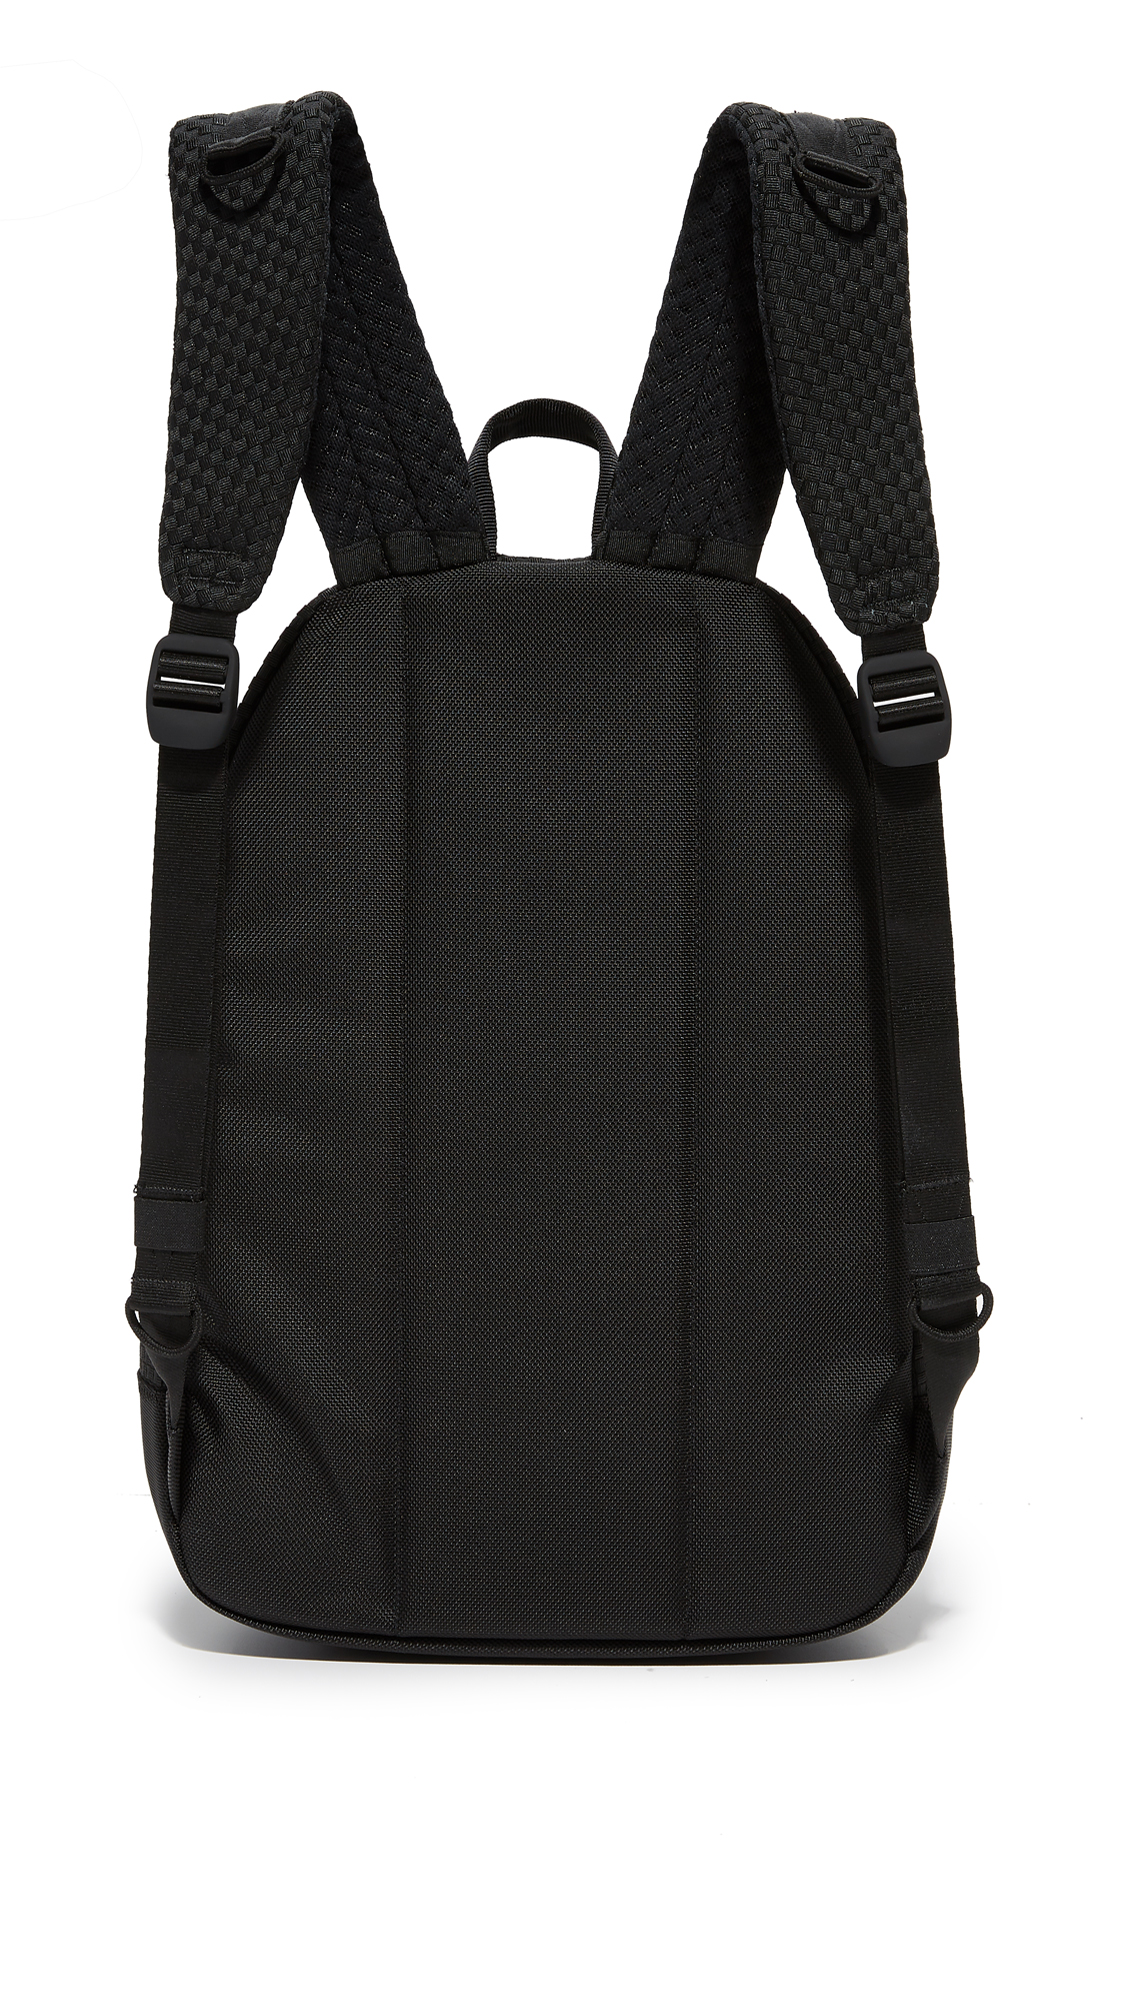 1262bf17a38 Herschel Supply Co. Woven Lawson Backpack